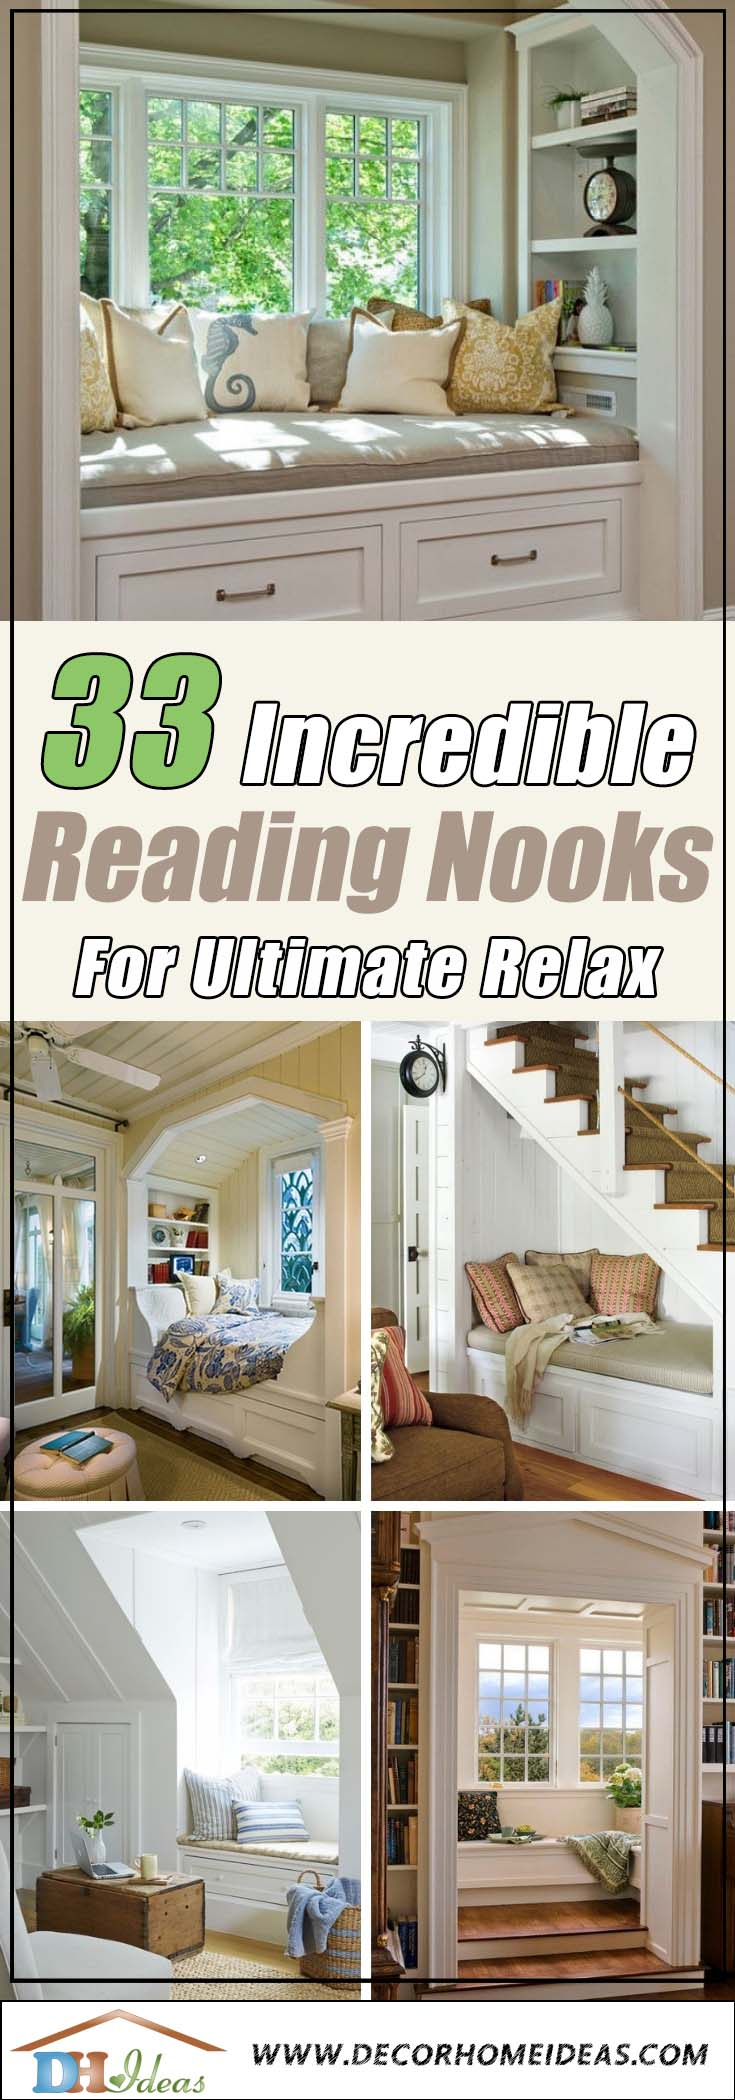 33 Lovely Reading Nooks for Ultimate Relaxation and Tranquility | Fabulous reading nook ideas and designs. Reading corners and tiny relaxation place at home #readingnook #nook #readingcorner #decoratingideas #homedecor #cozynook #decorhomeideas